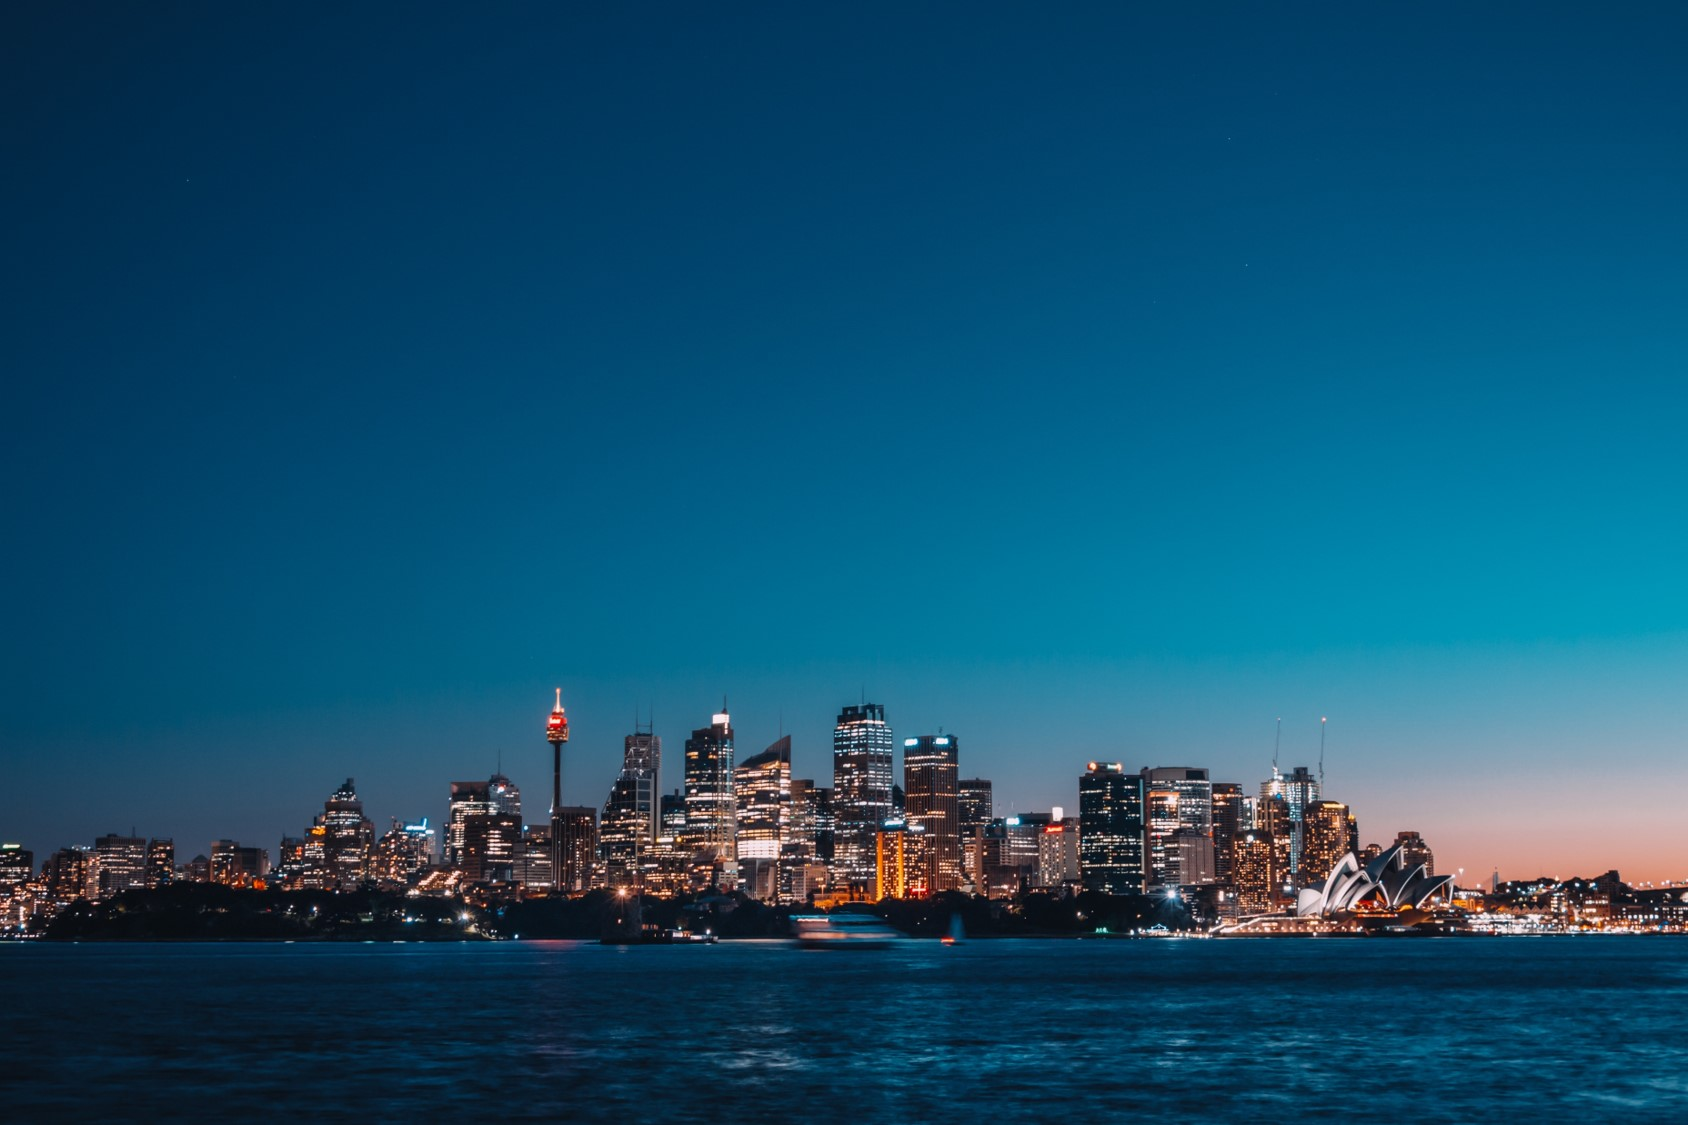 Australia: Legal Framework For European Investments – Focus on Corporate and Tax Matters